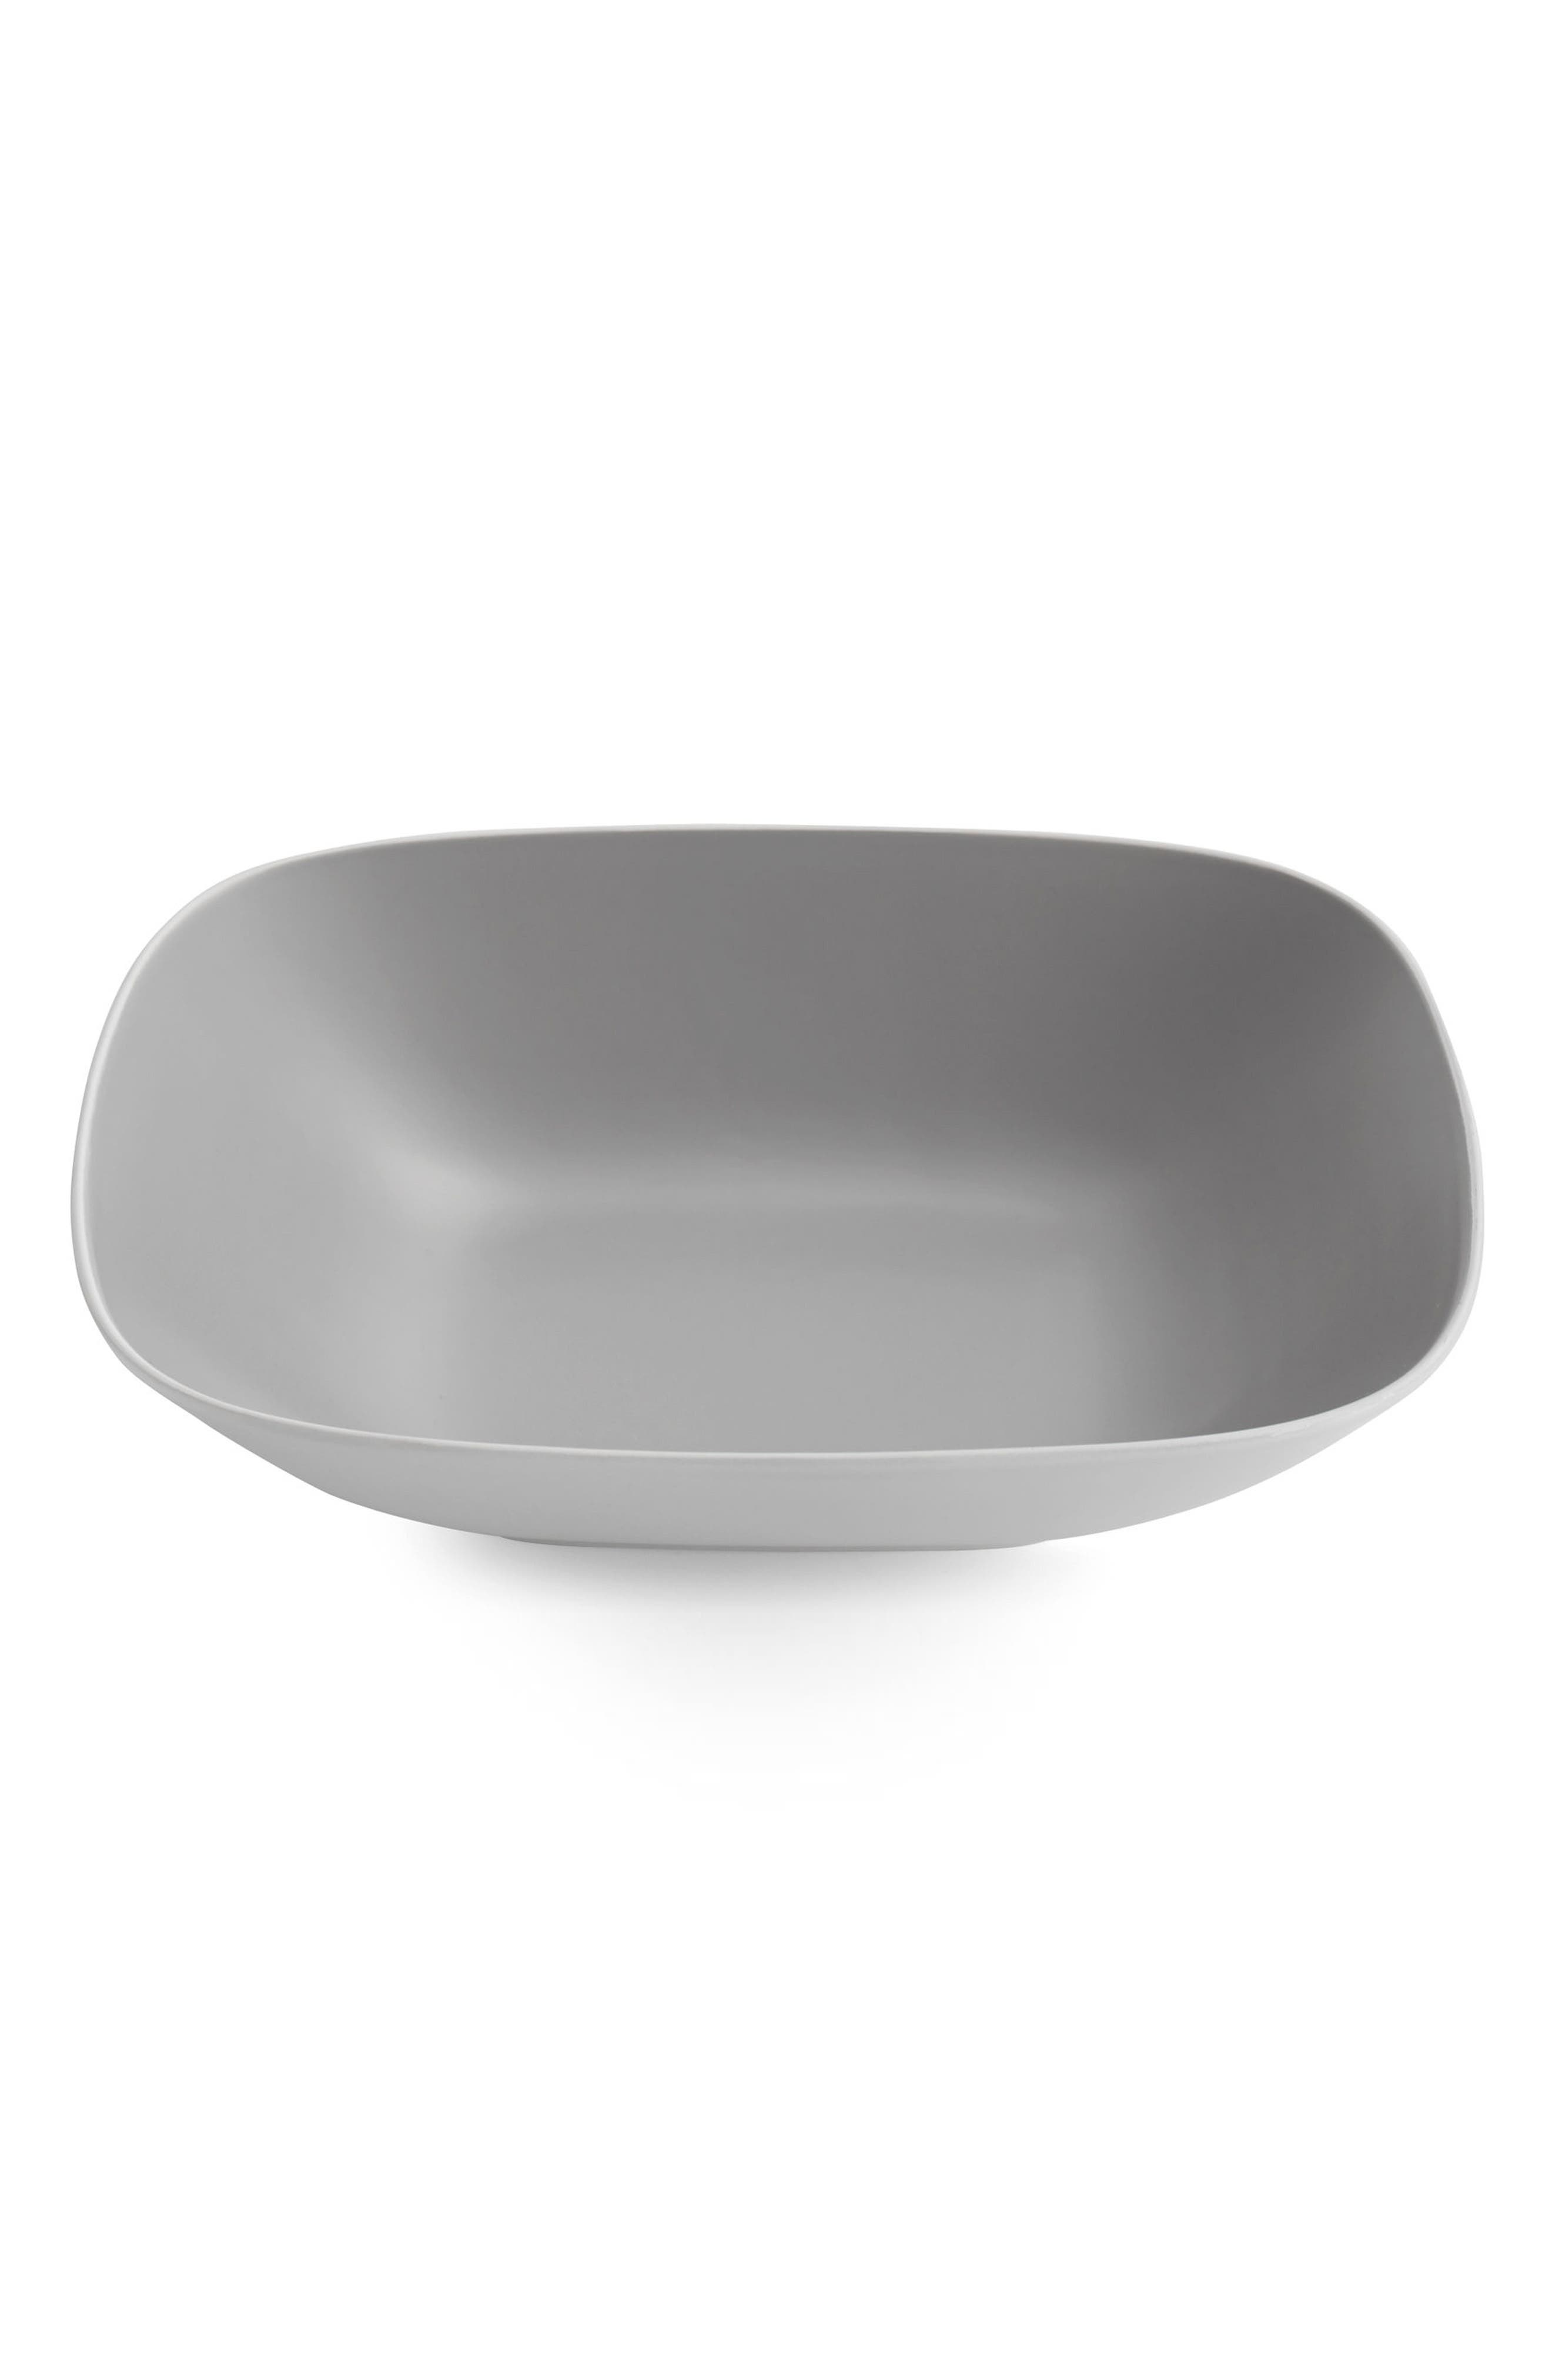 POP Square Serving Bowl,                             Main thumbnail 1, color,                             020